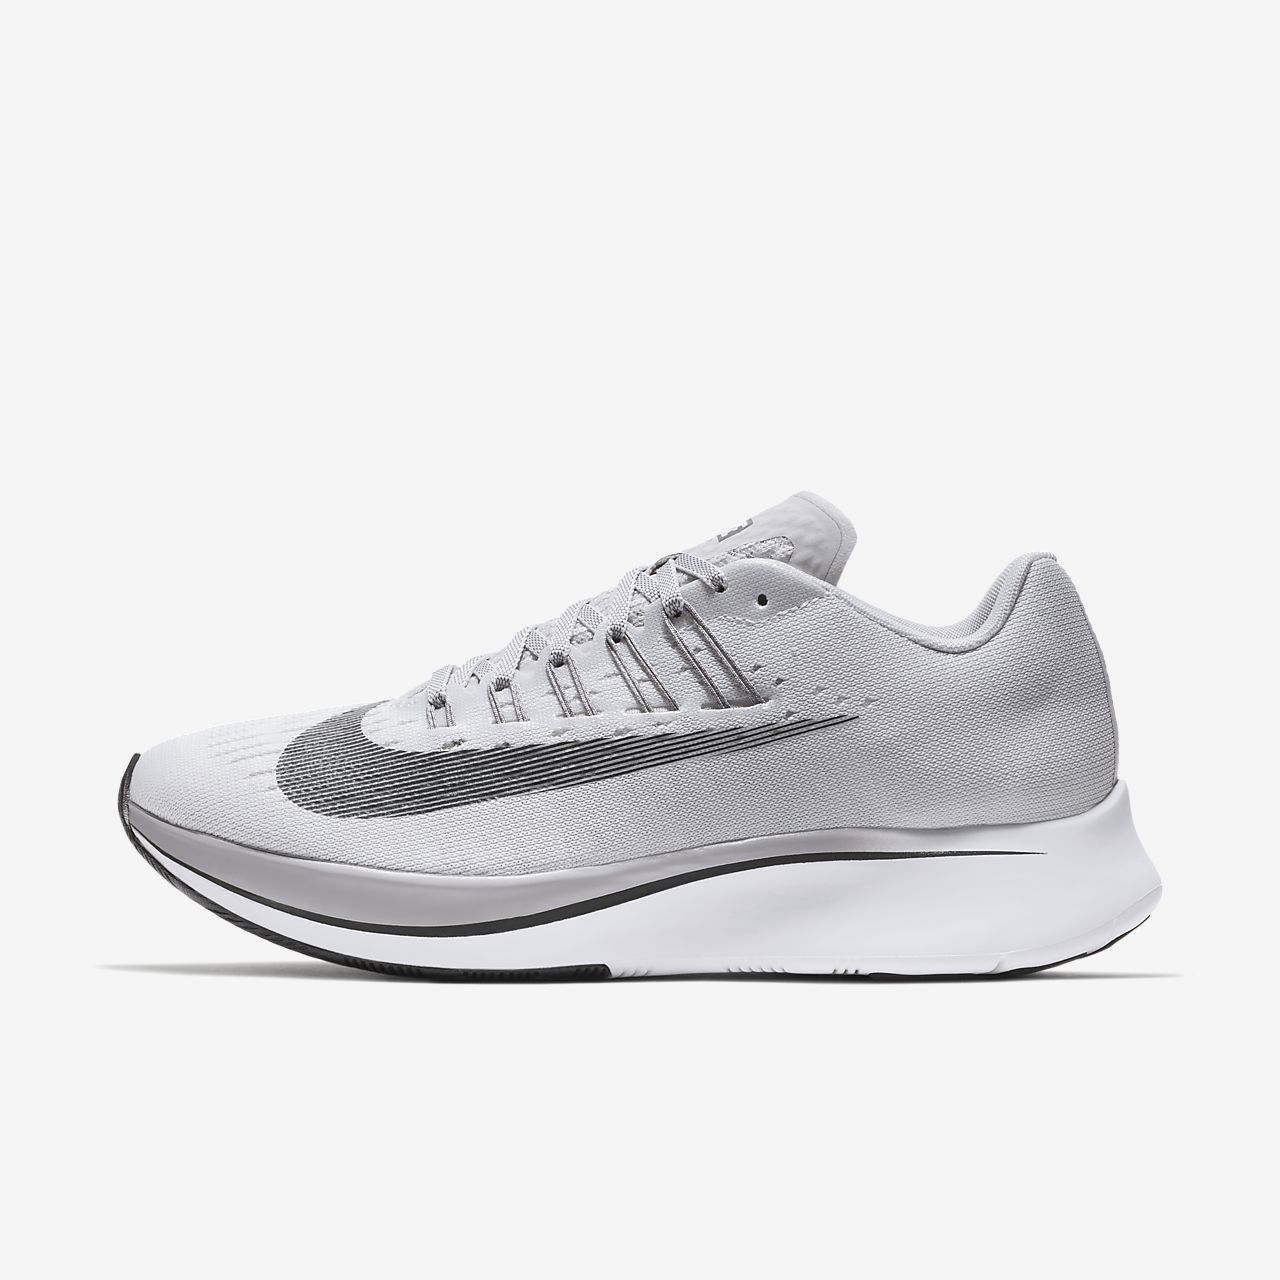 nike zoom fly womens running shoe nikecom